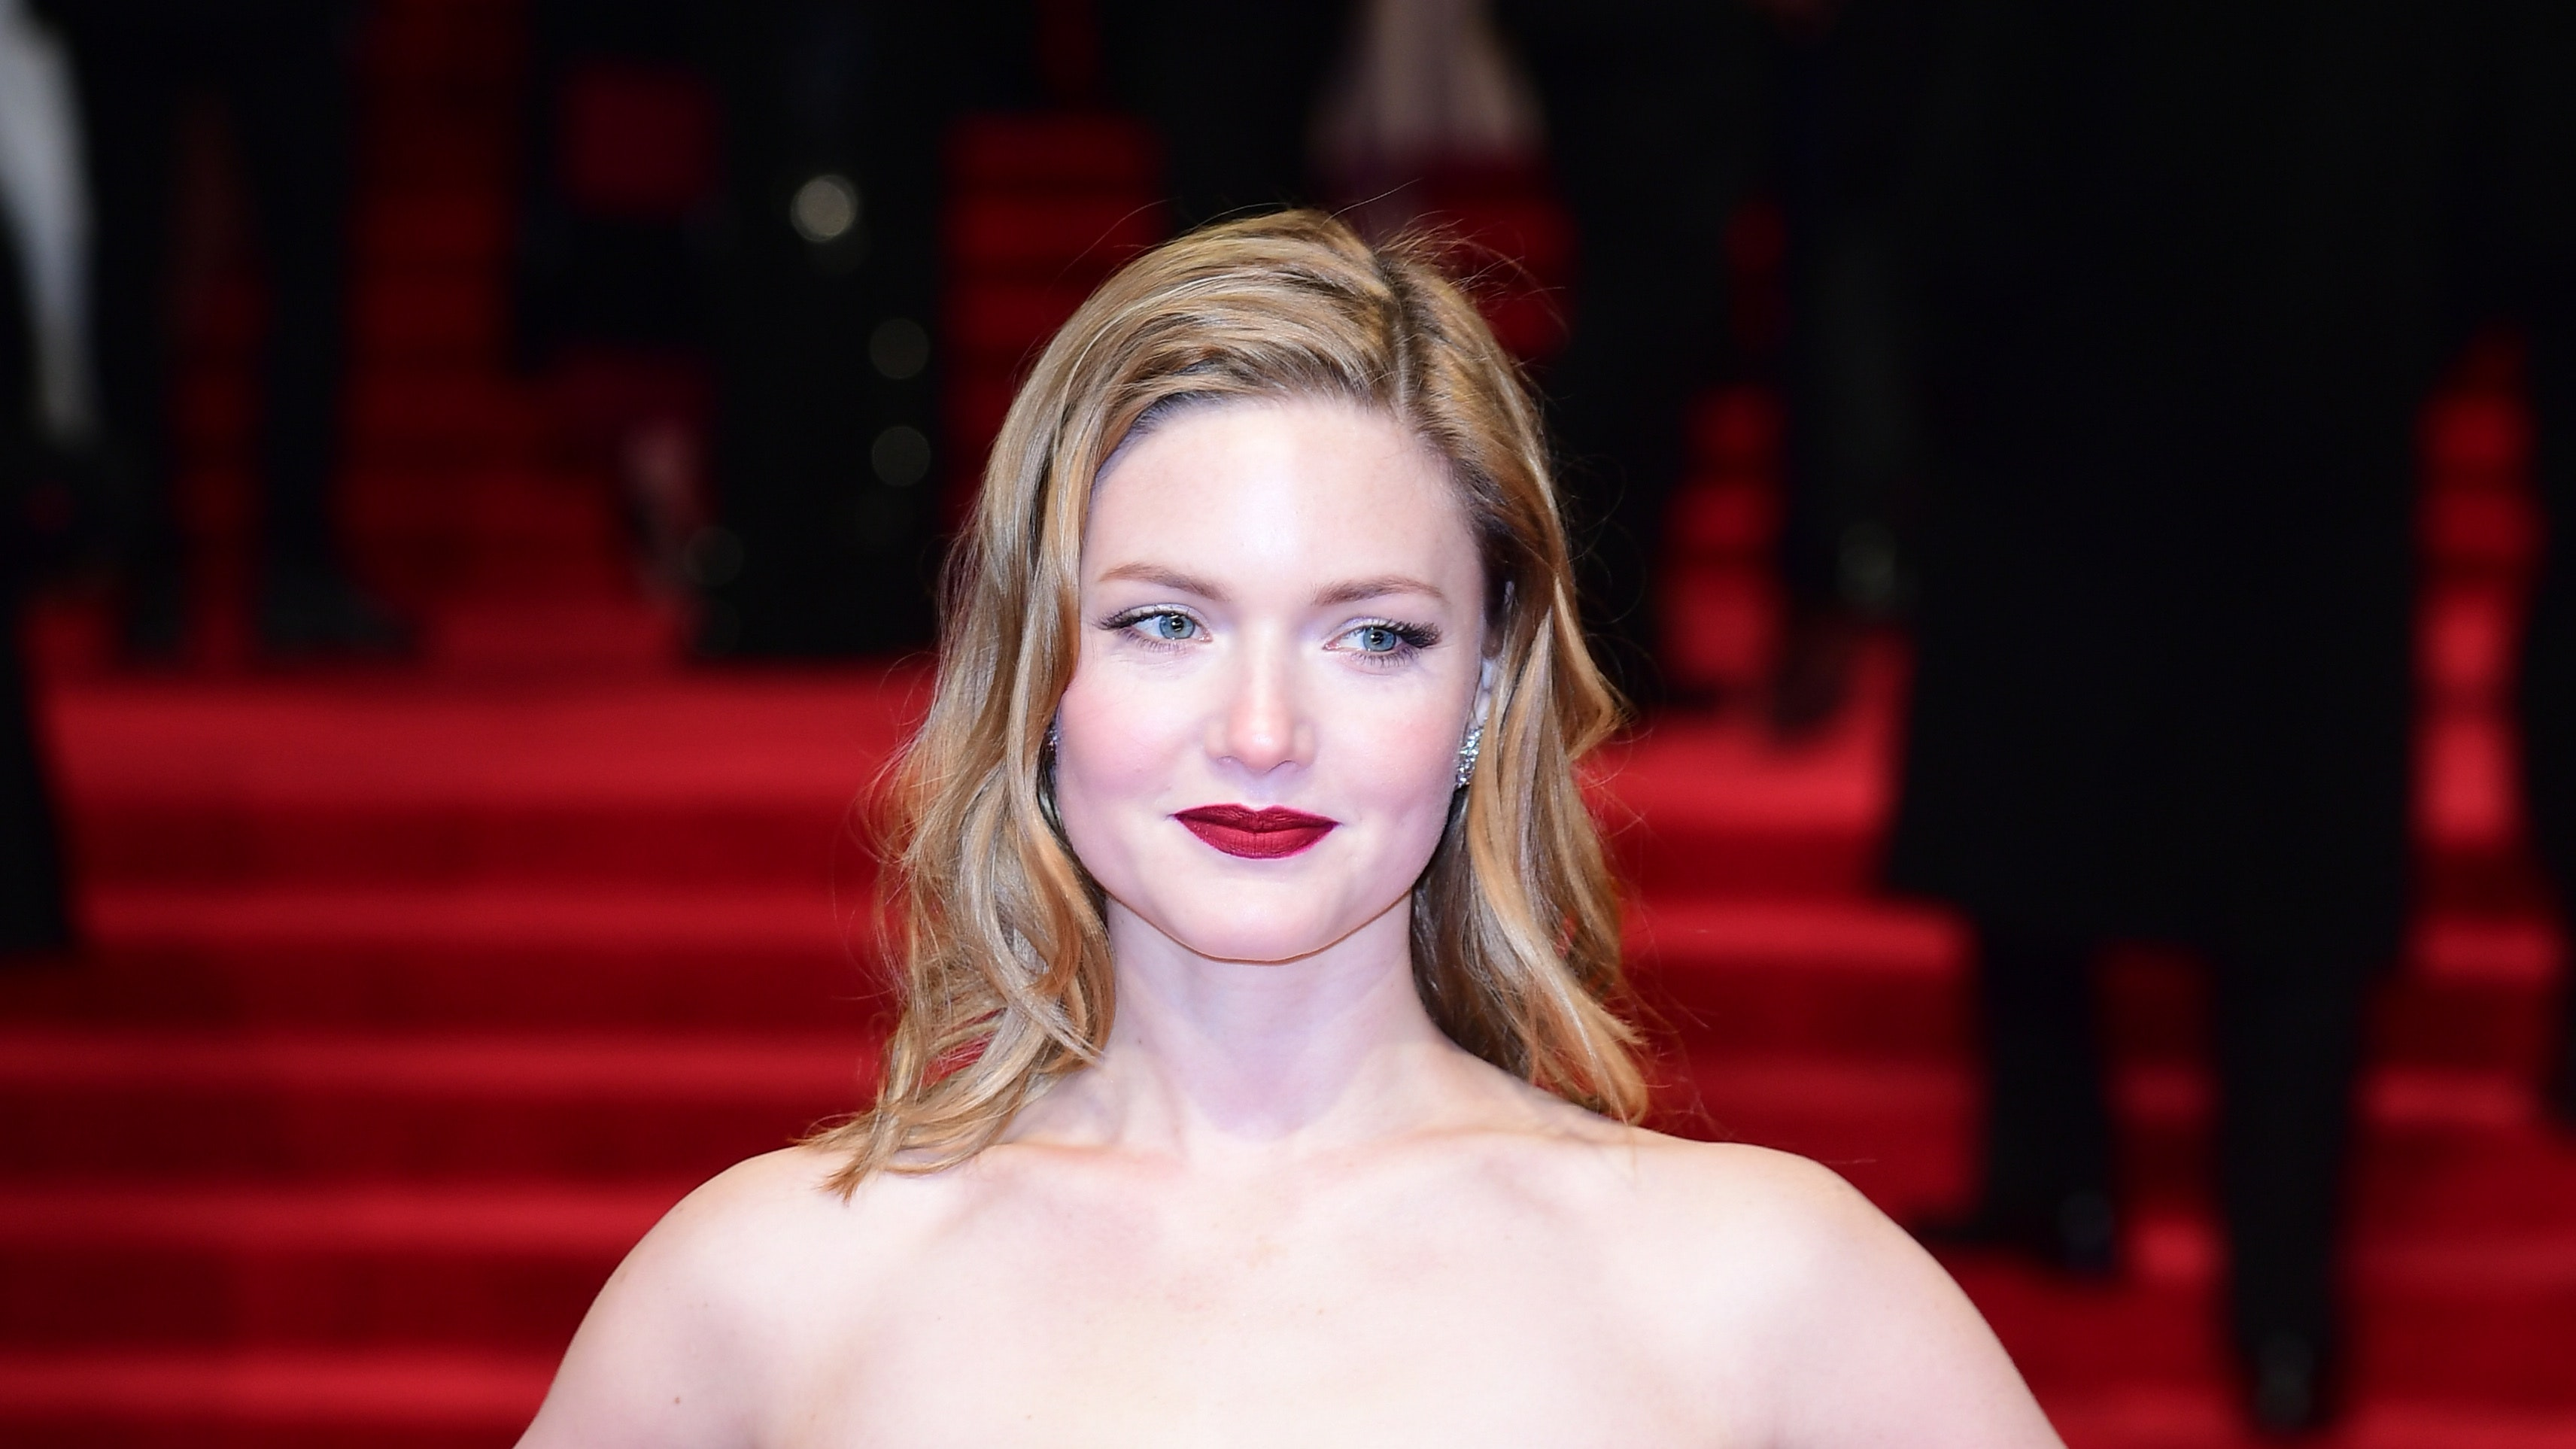 2019 Holliday Grainger nudes (33 photos), Topless, Leaked, Boobs, cleavage 2018